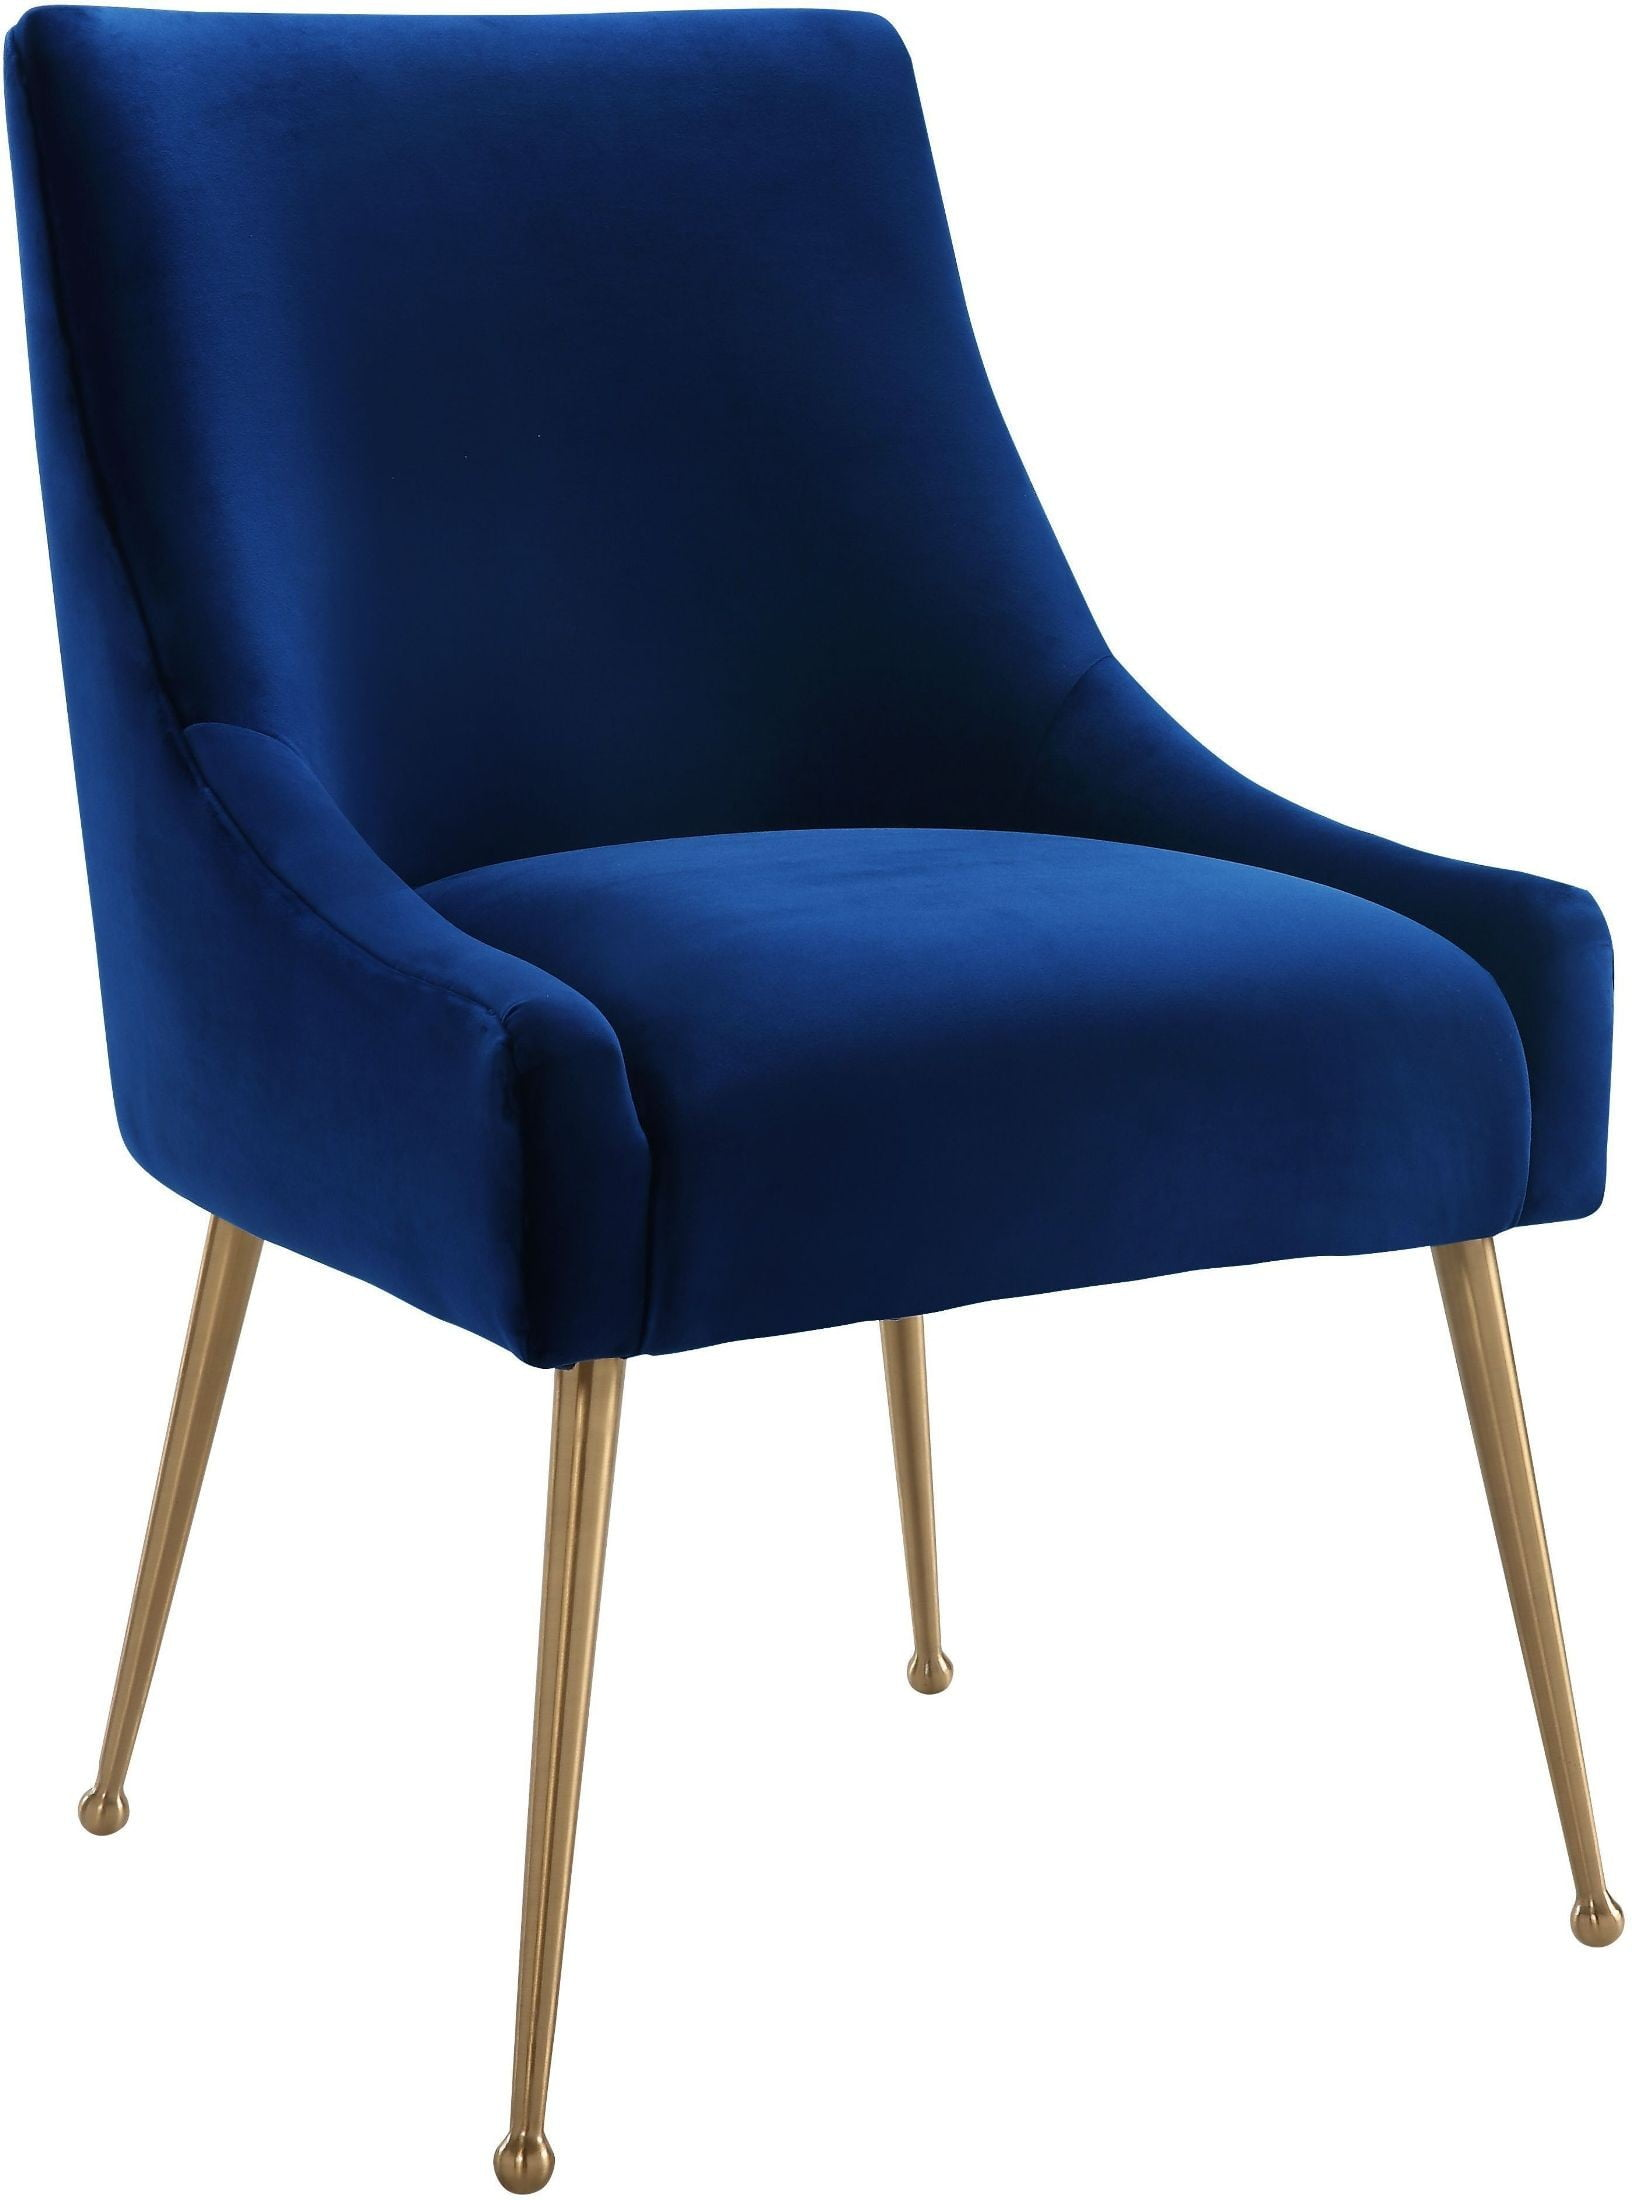 Top Beatrix Navy Velvet Side Chair from TOV | Coleman Furniture MB62